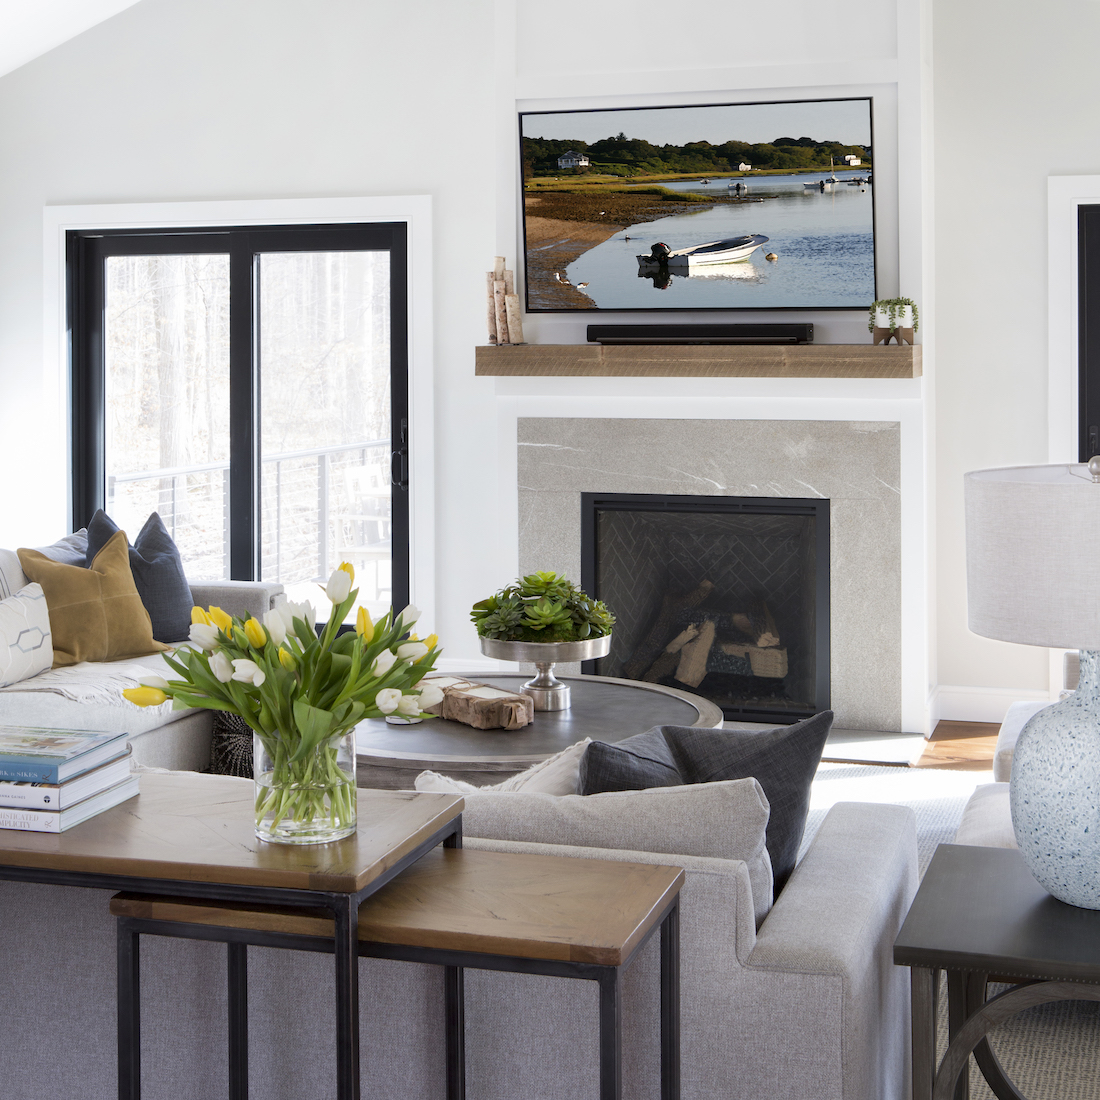 living-room-interior-design-stacking-tables-fireplace-wooden-mantel